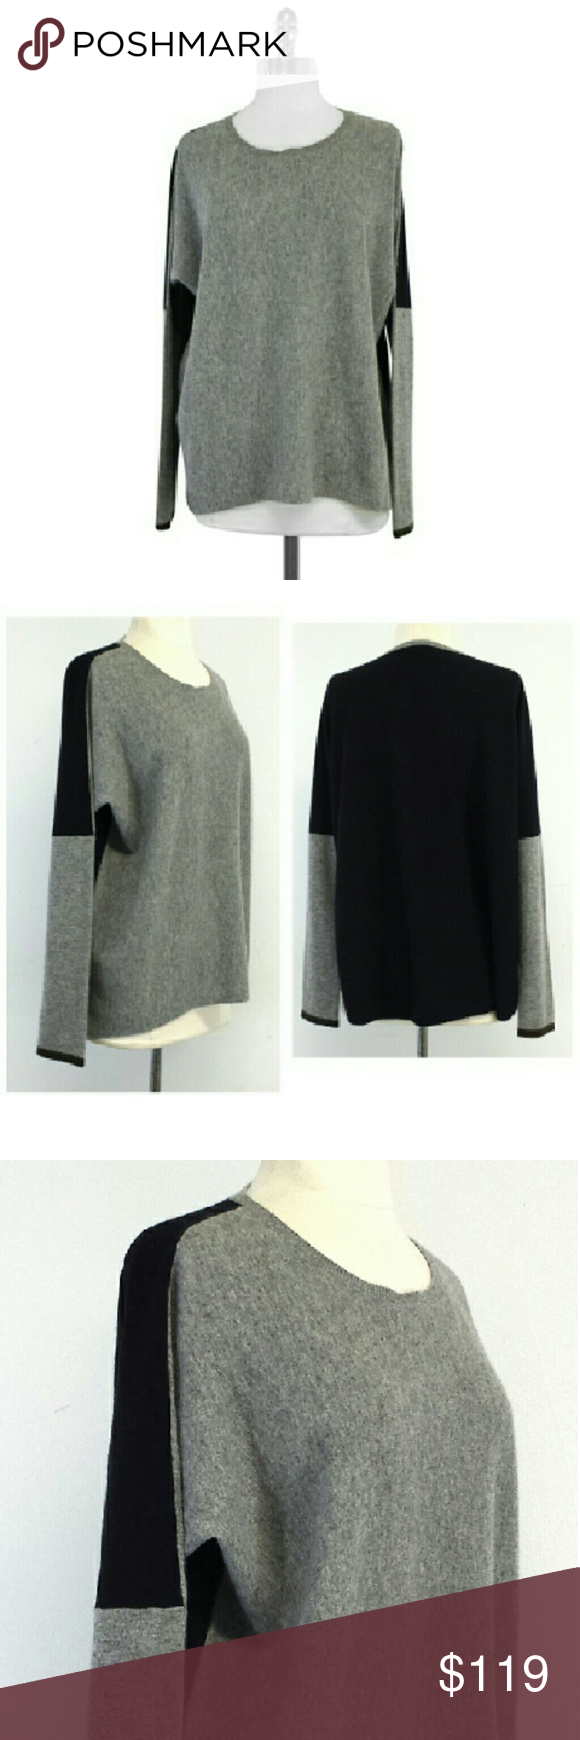 Vince- Grey & Black Cashmere Sweater Sz L | Black cashmere sweater